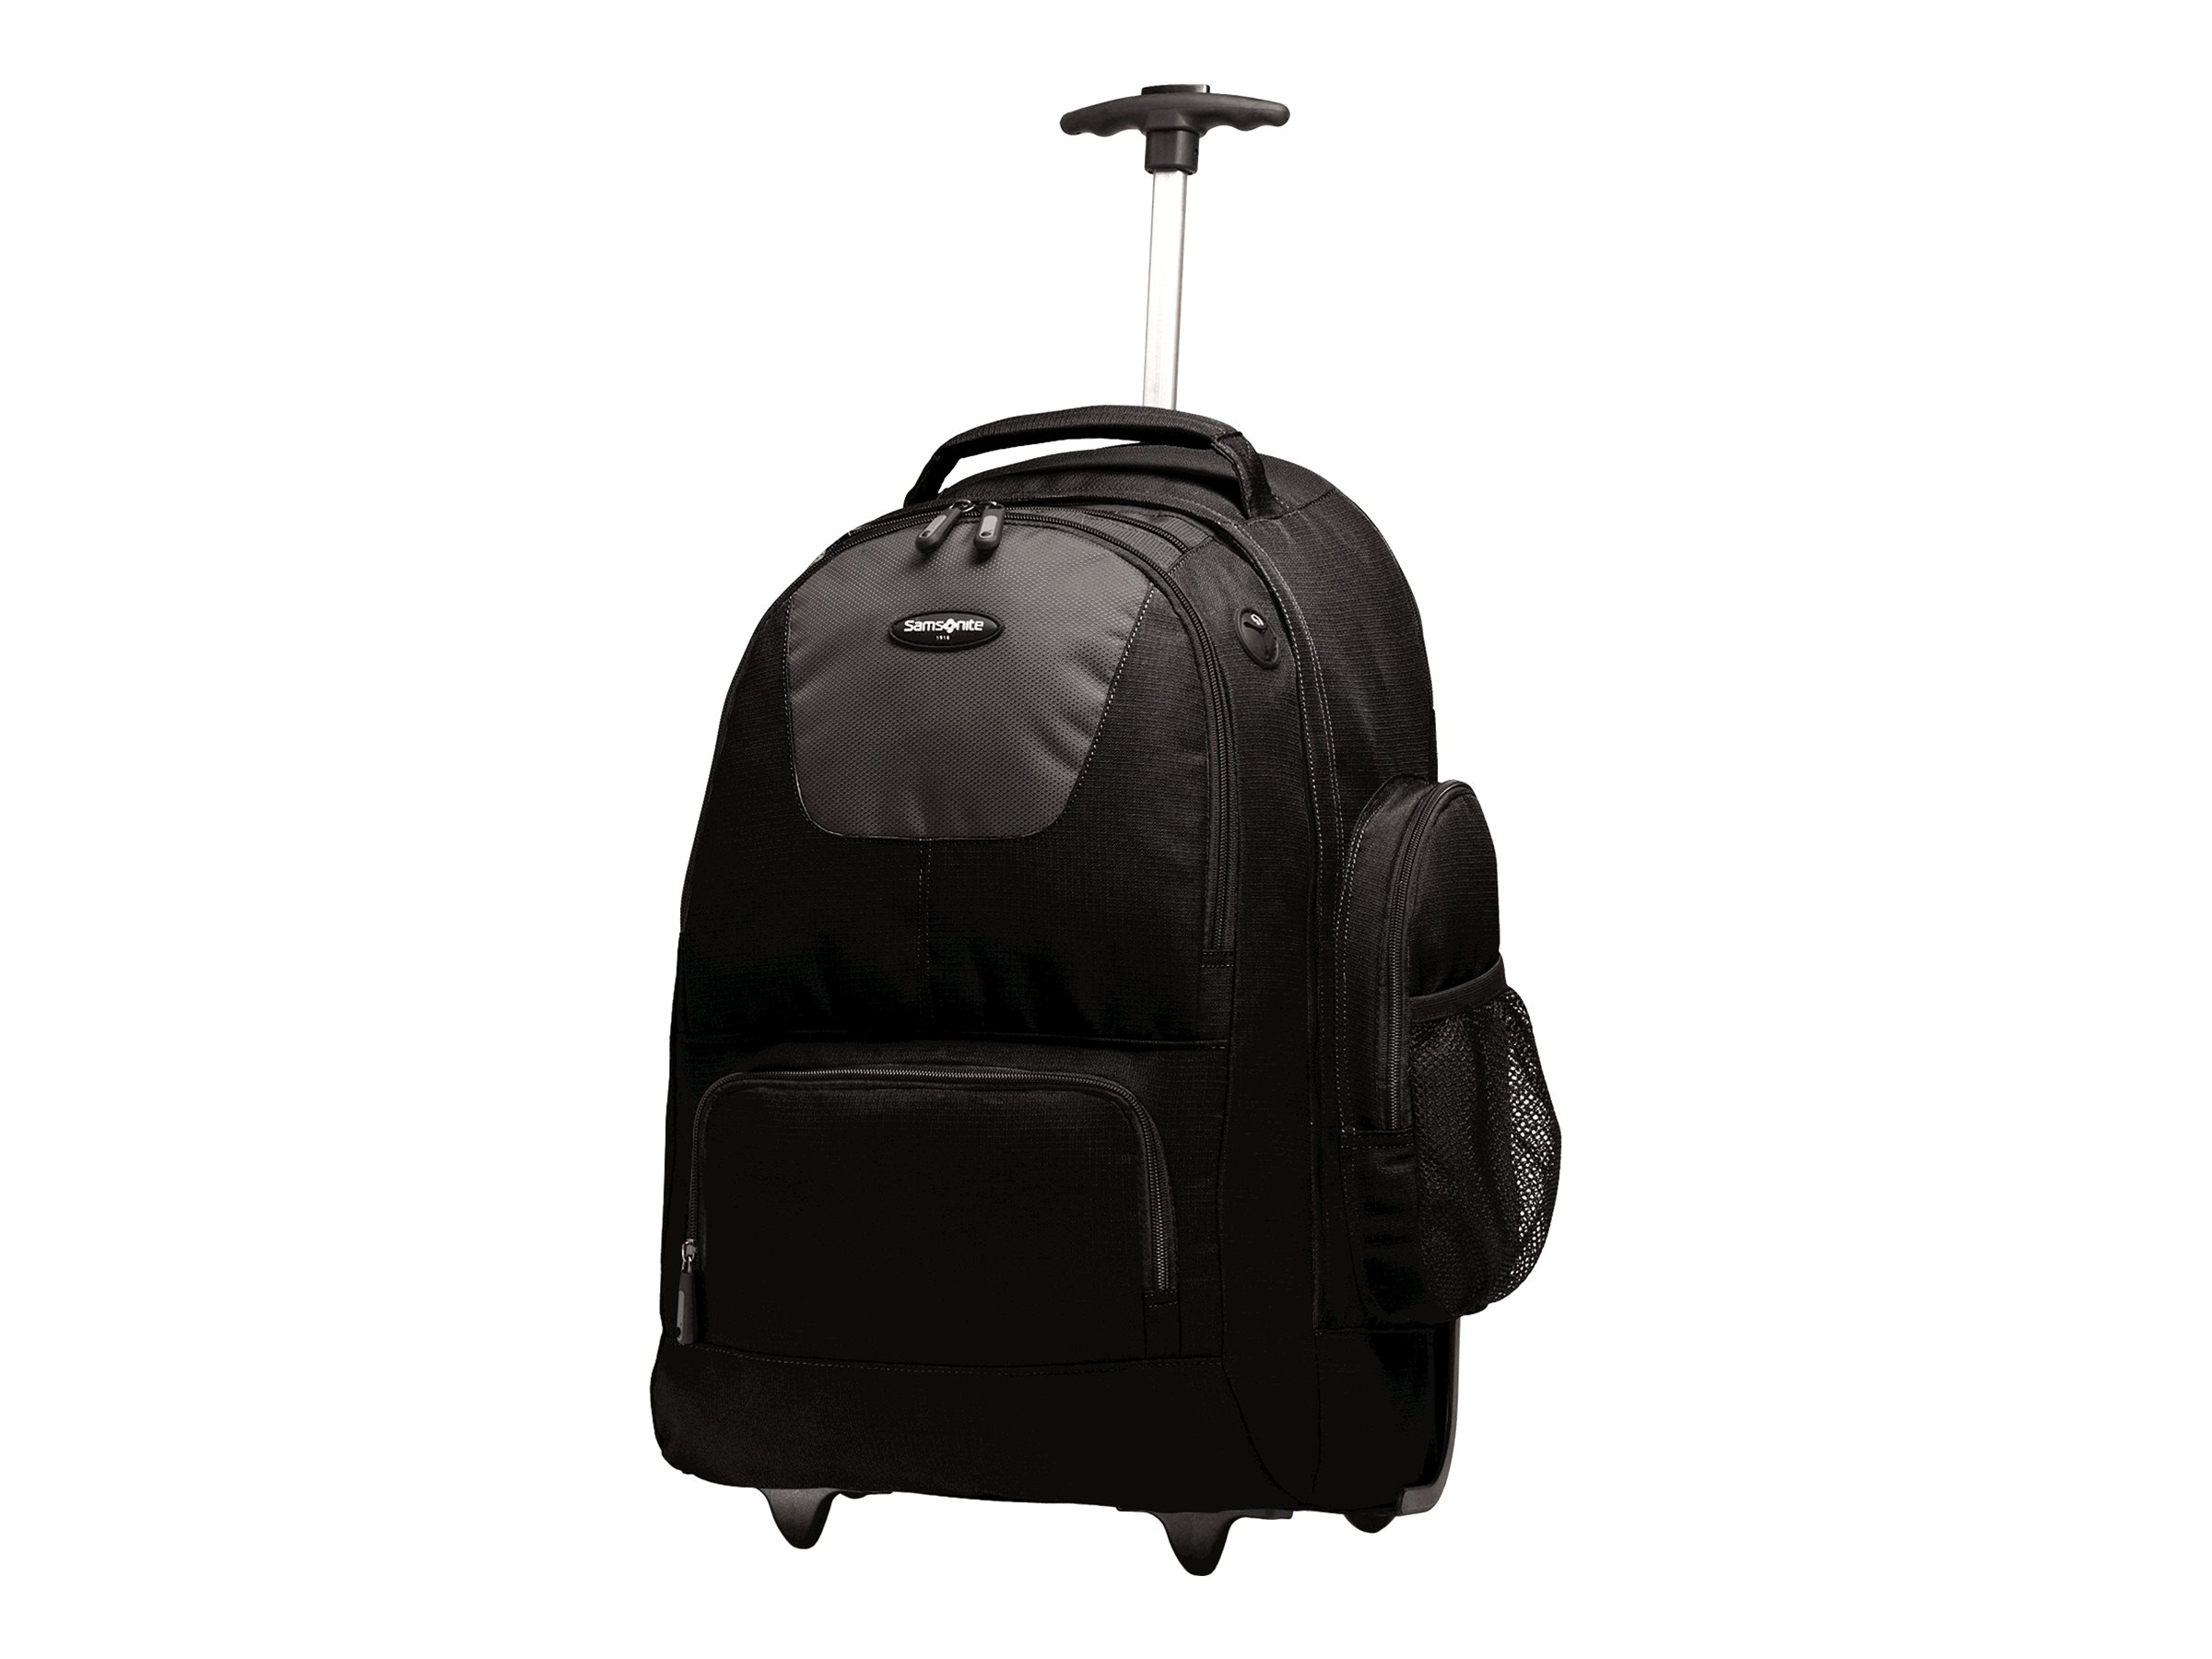 Samsonite Wheeled Computer Backpack notebook carrying backpack/trolley